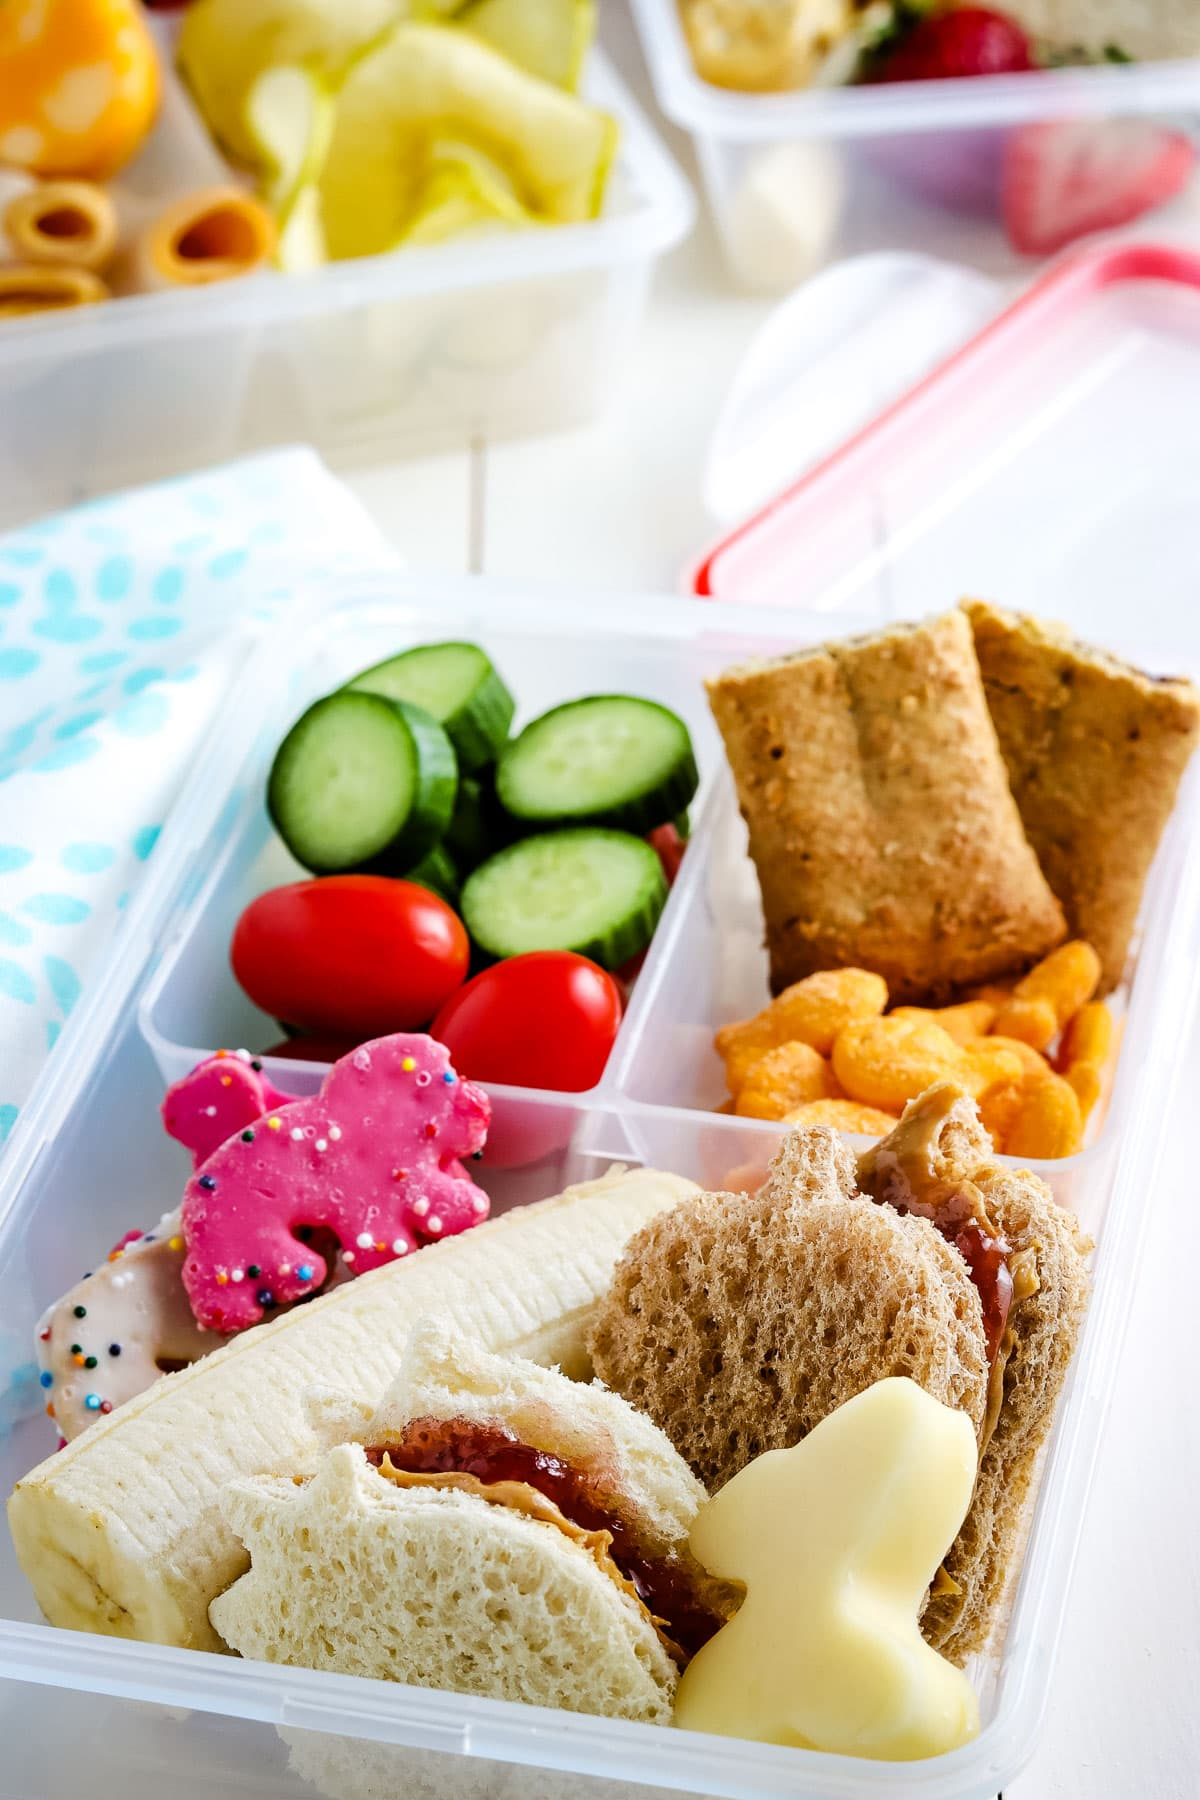 Lunch box filled with sandwich, cheese, granola bar, cucumbers, tomatoes and more